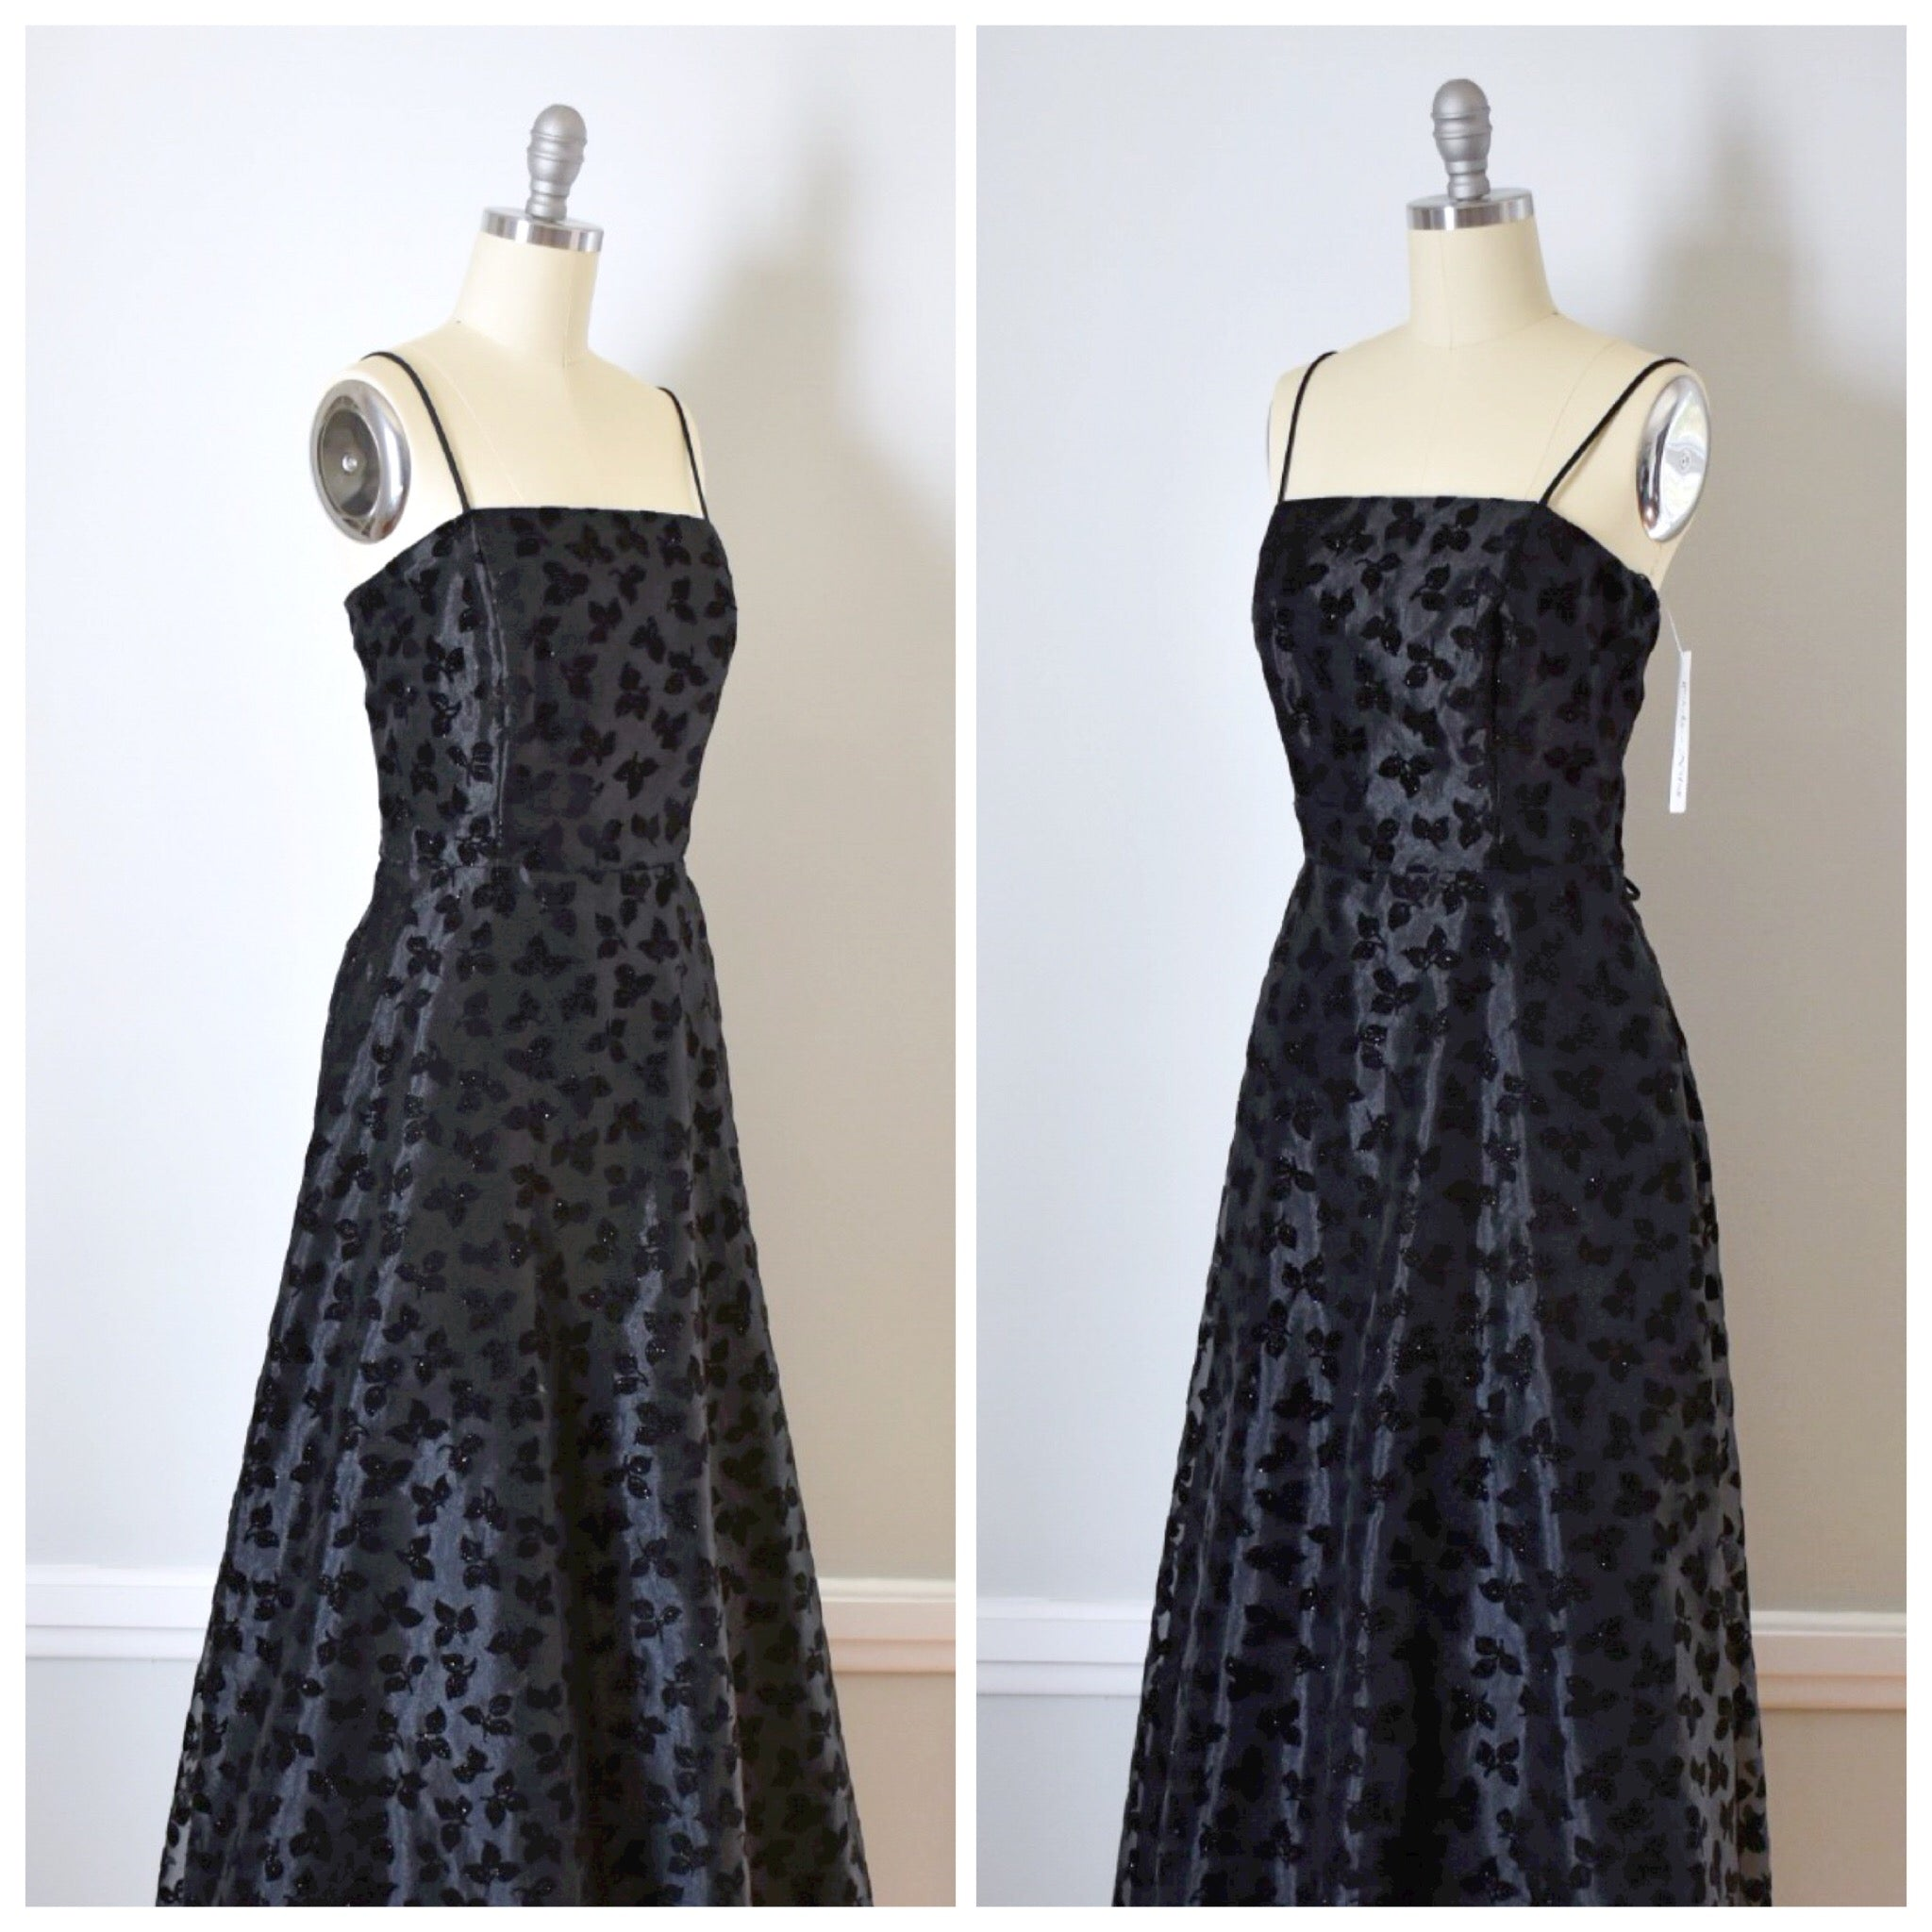 SOLD // 90s Vintage Fit And Flare Formal Dress